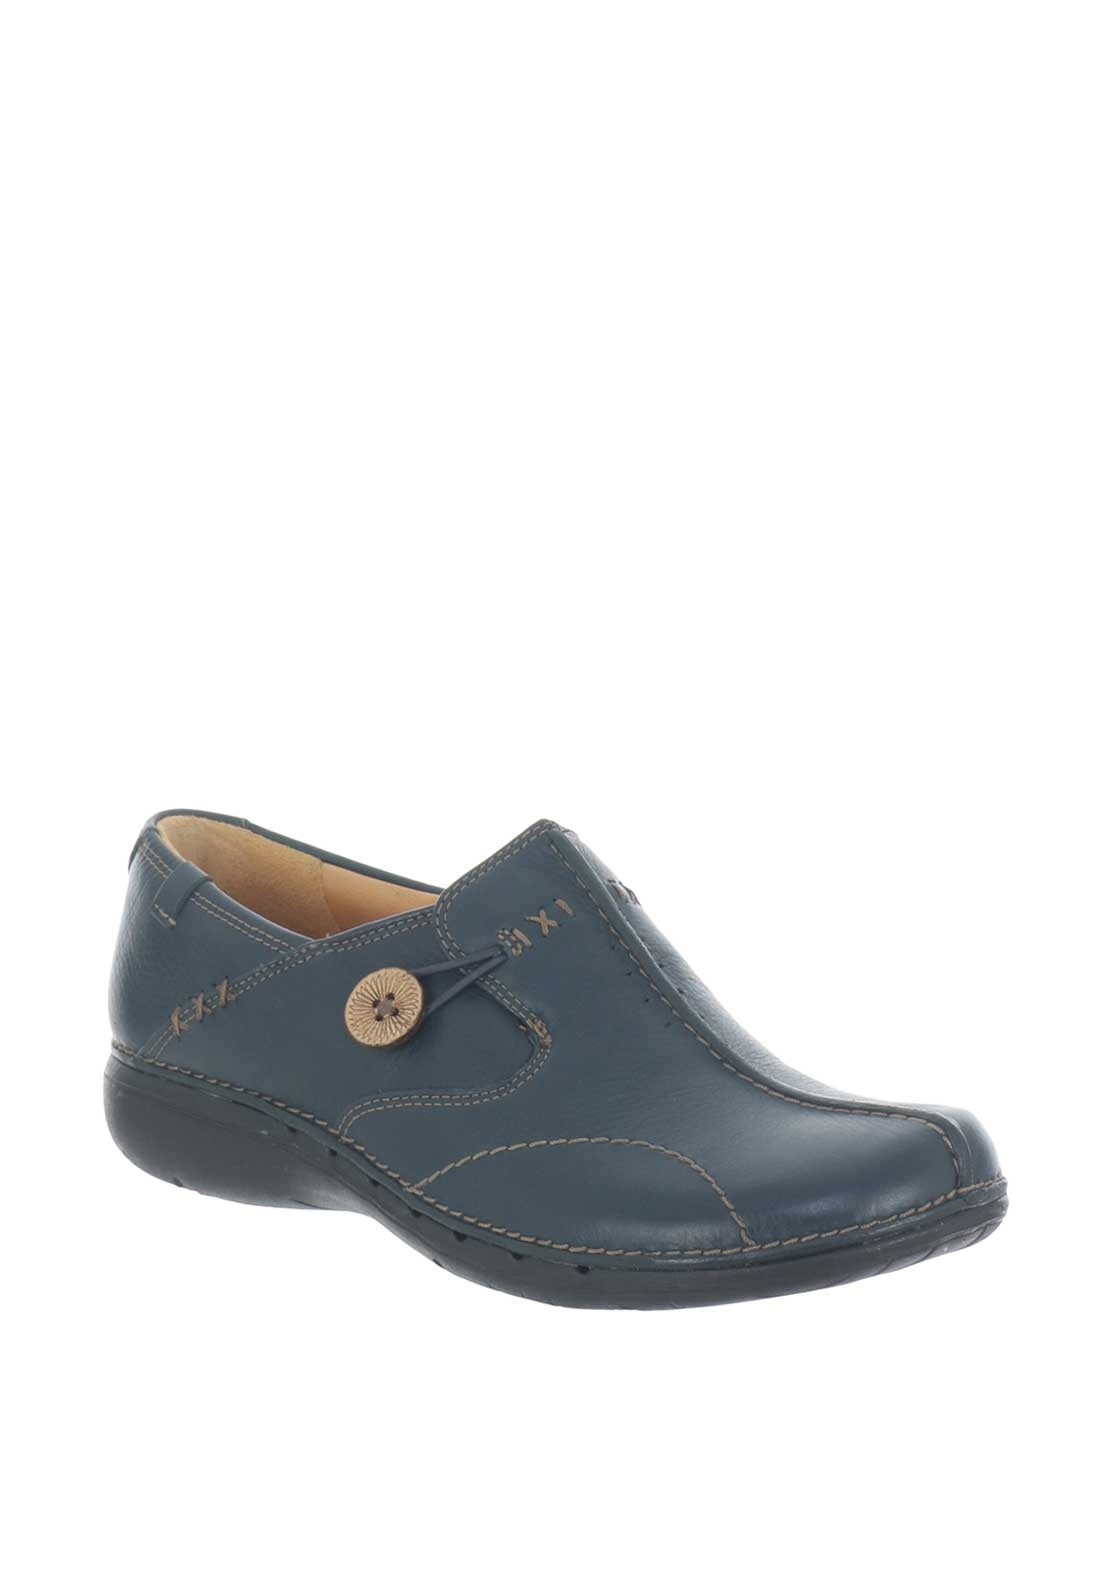 Clarks Womens Leather Un Loop Slip on Shoes, Navy